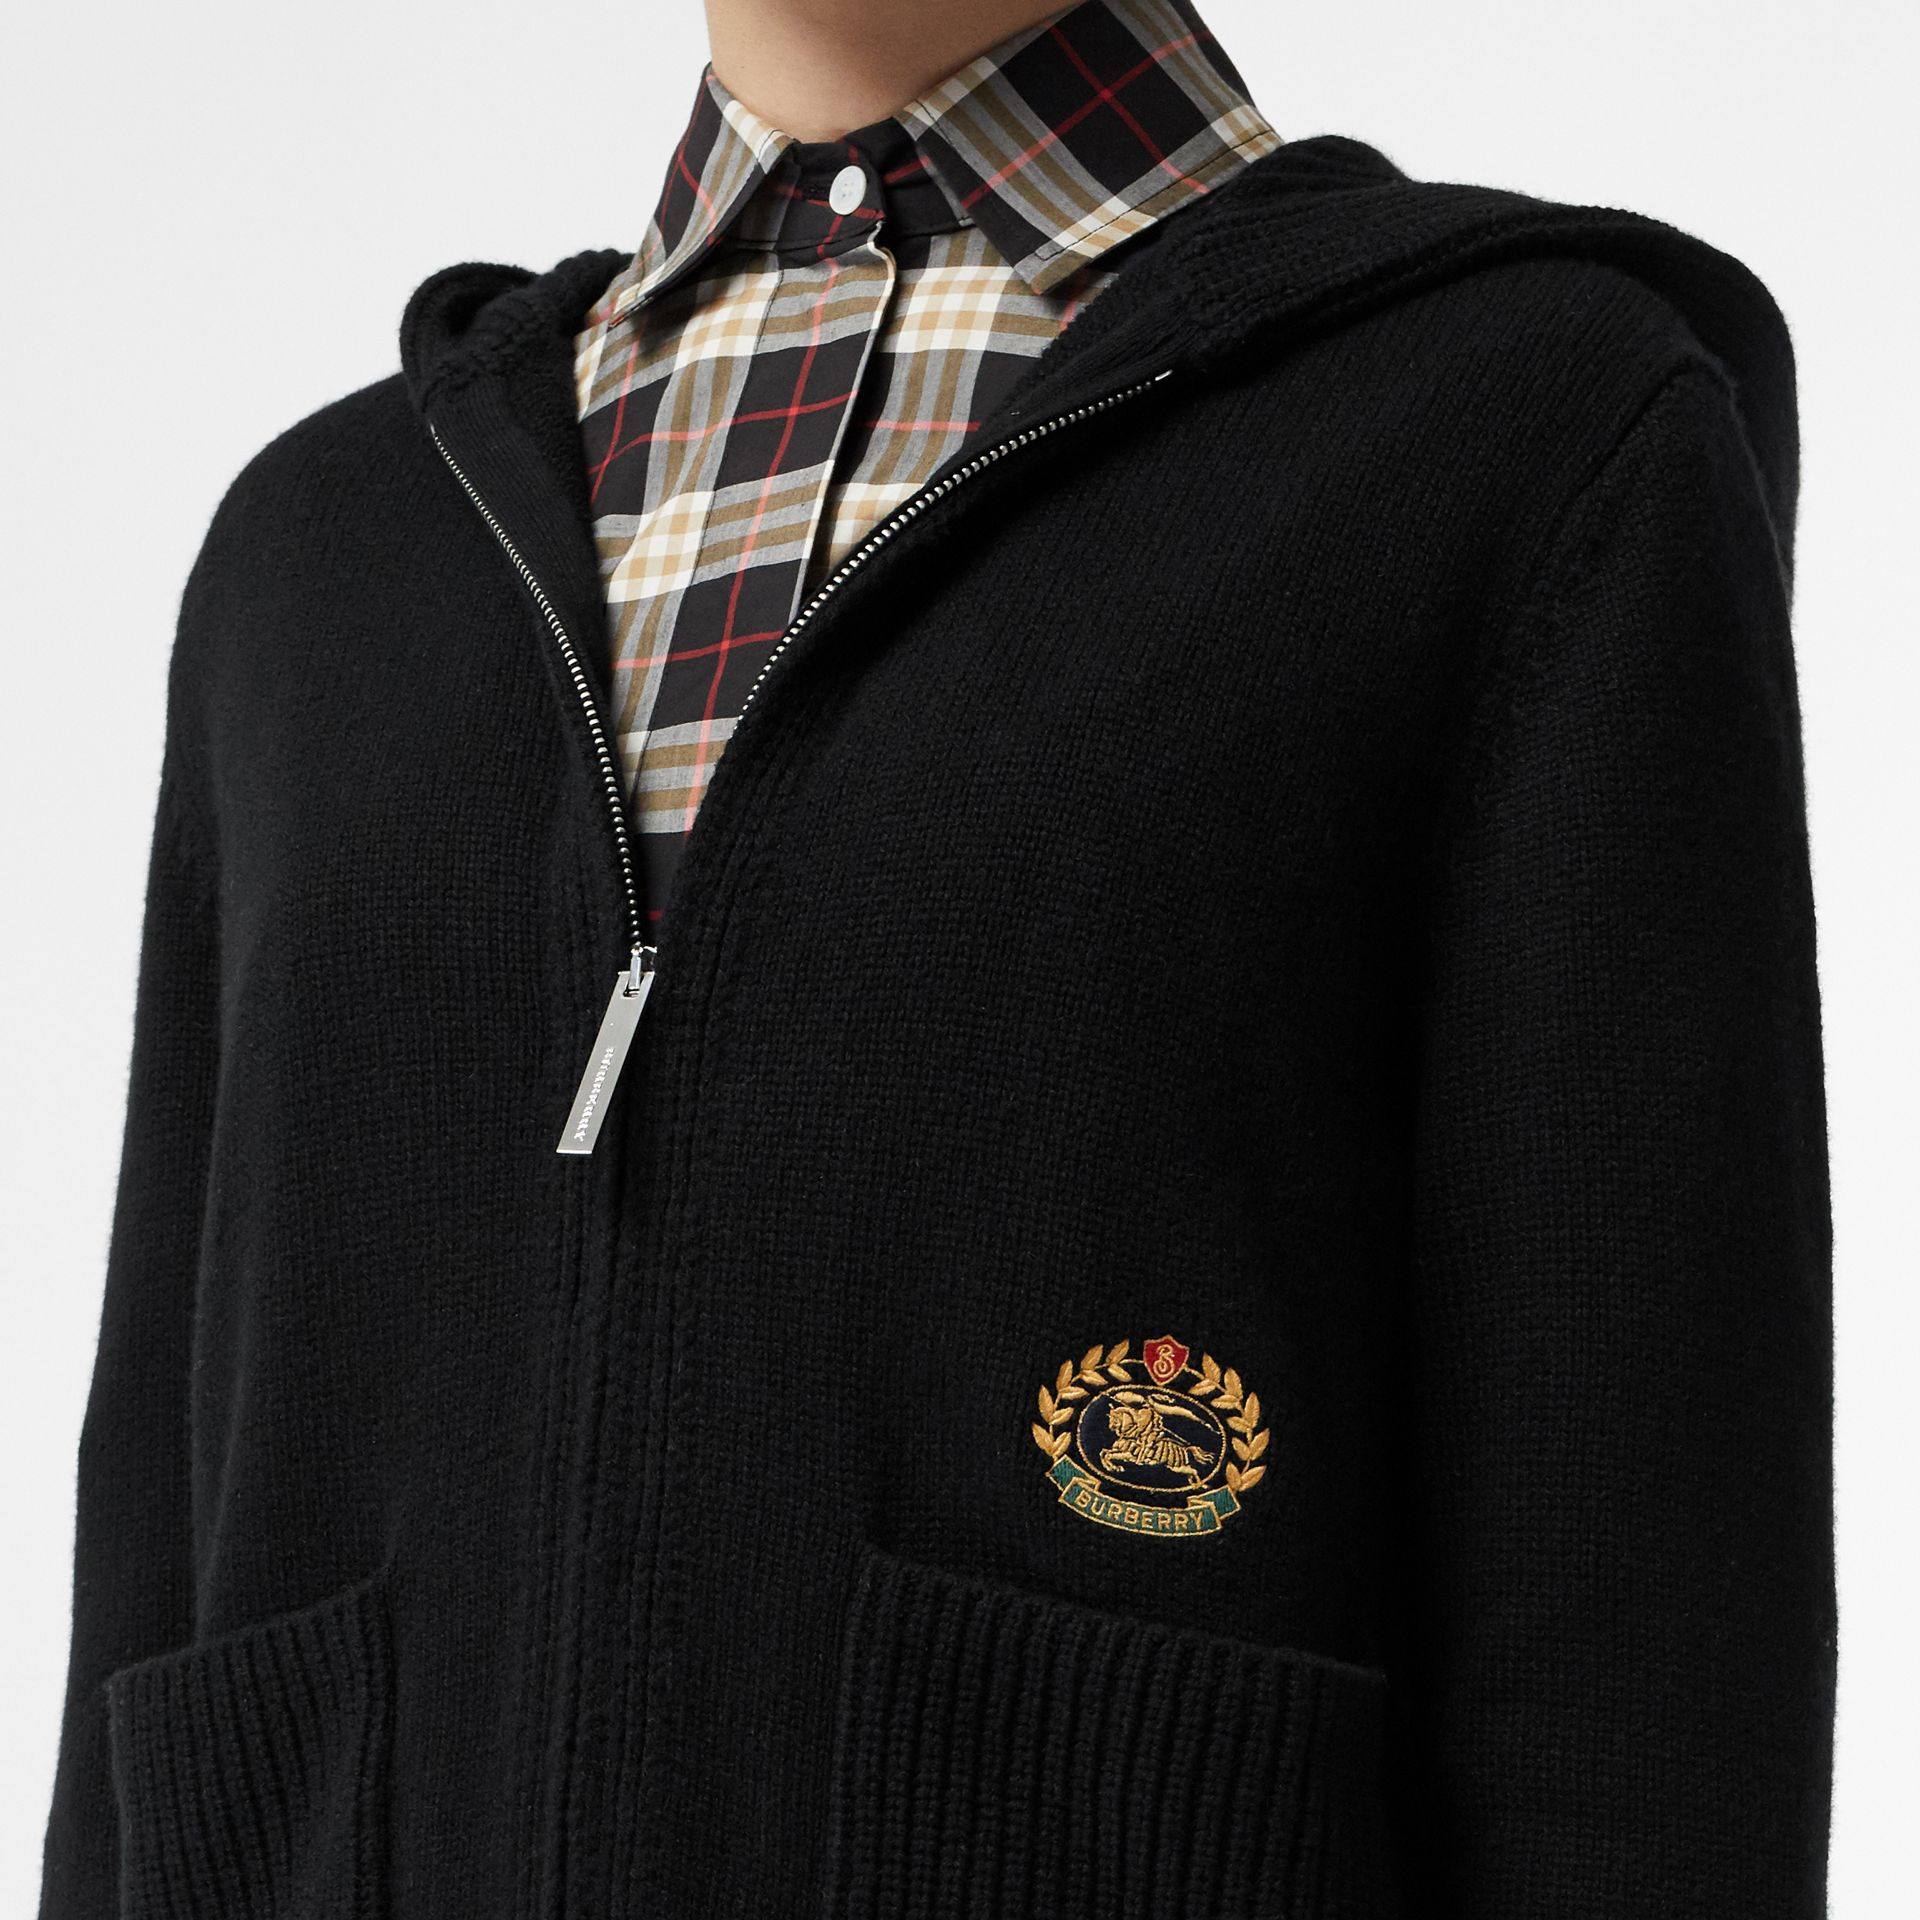 Embroidered Crest Cashmere Hooded Top in Black - Women | Burberry Australia - gallery image 1